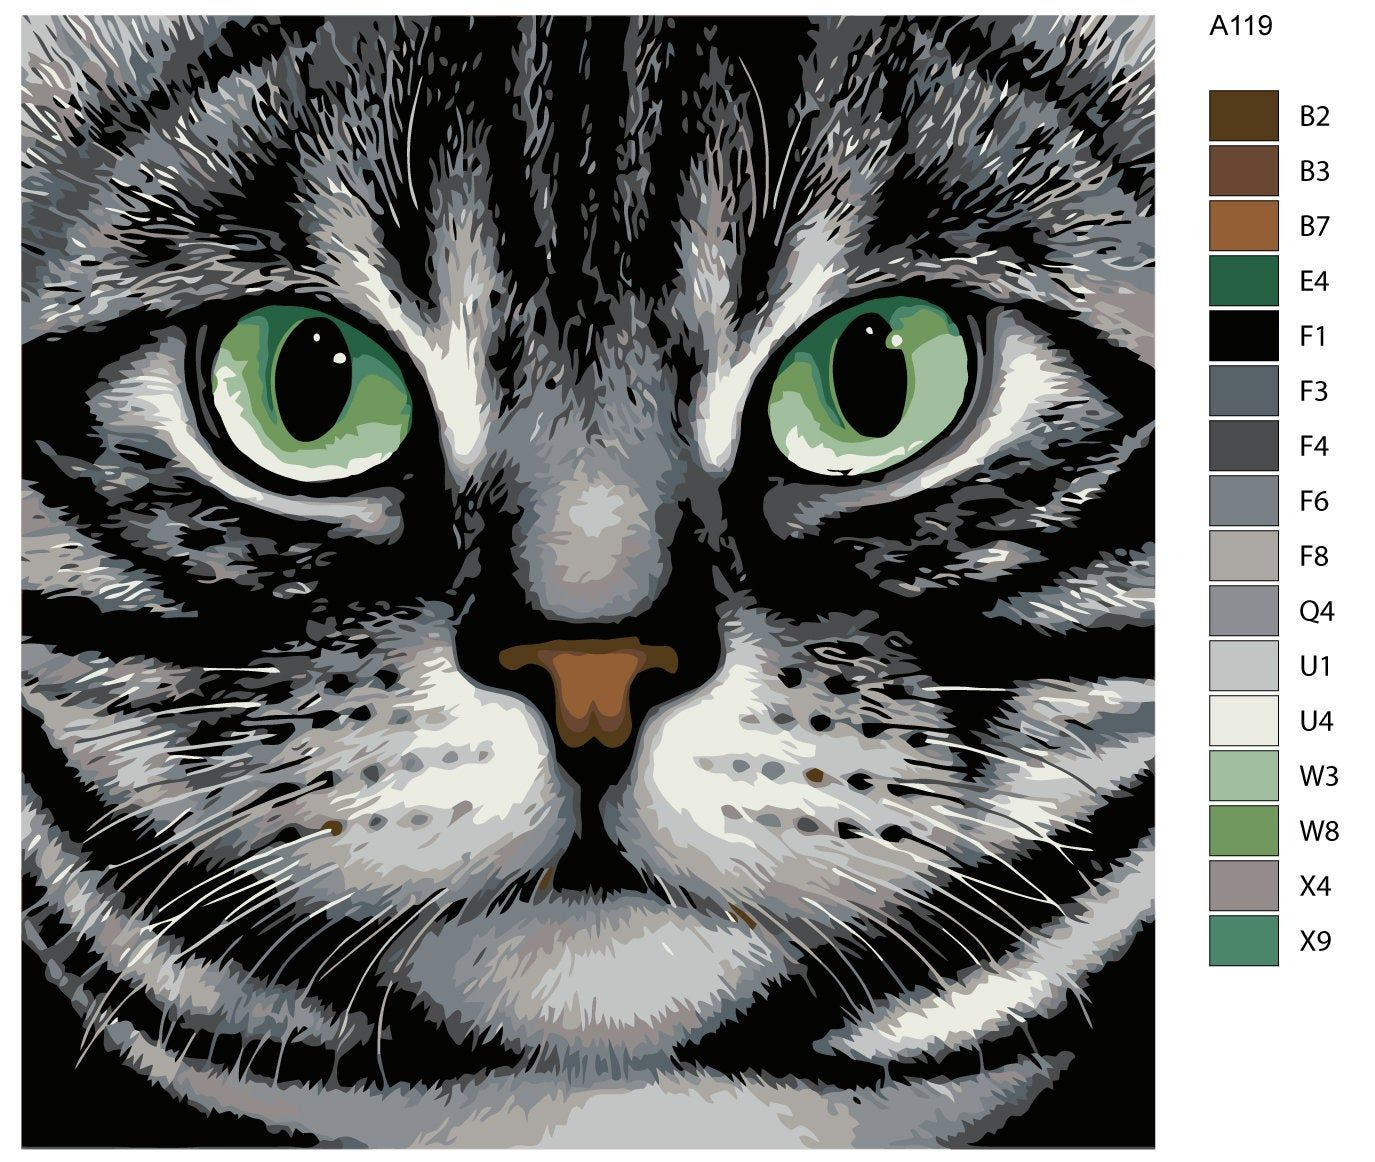 Cats painting / DIY paint by number kit / painting kit